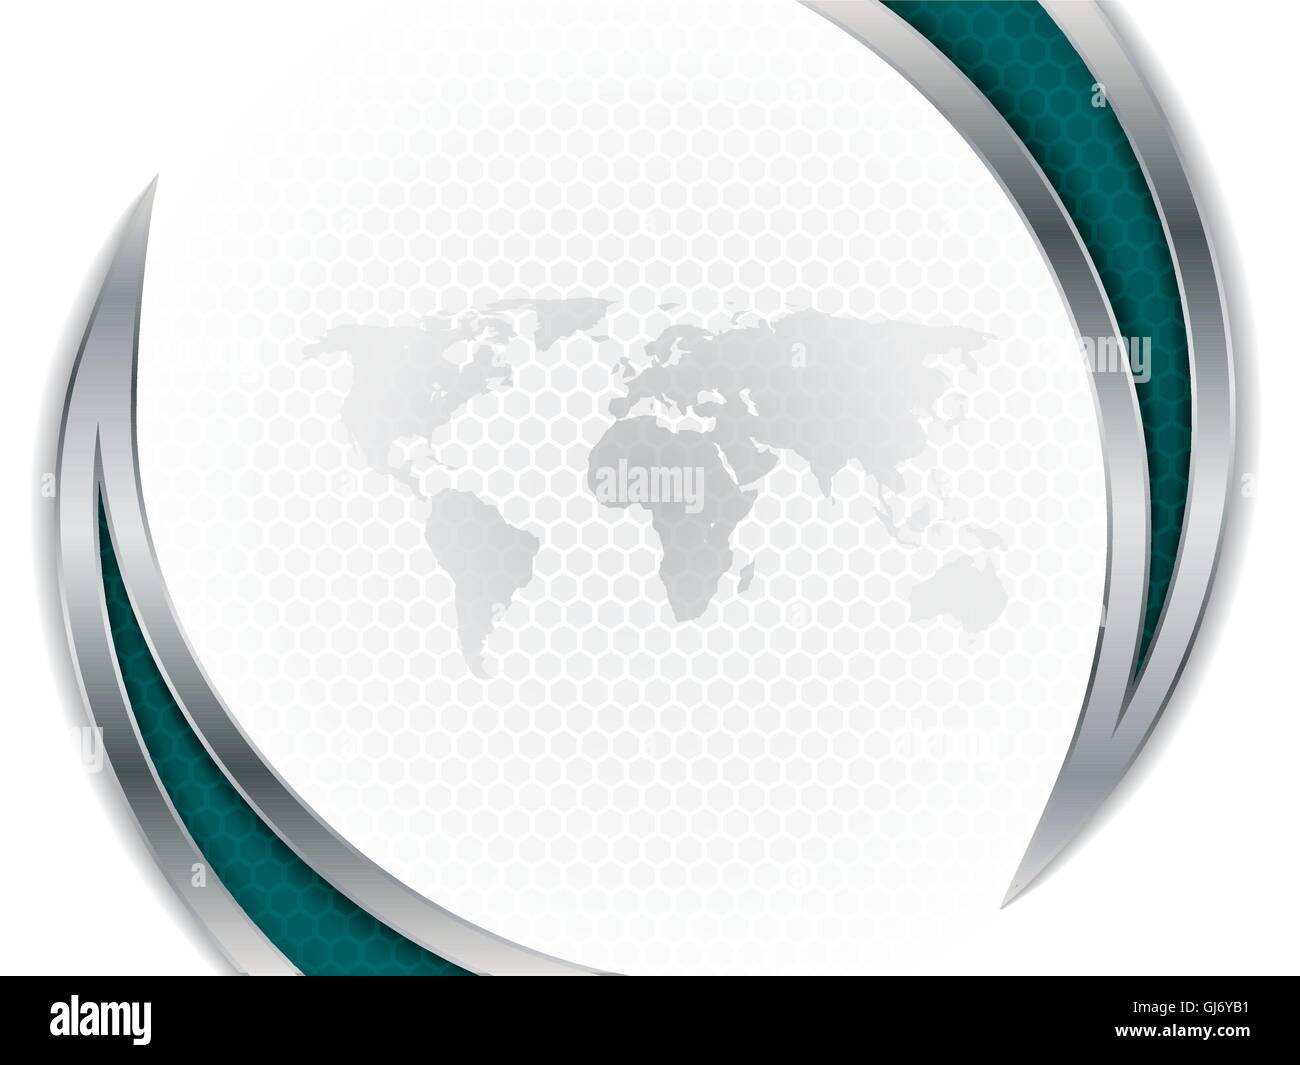 Company brochure design with hexagon and world map stock vector art company brochure design with hexagon and world map gumiabroncs Gallery